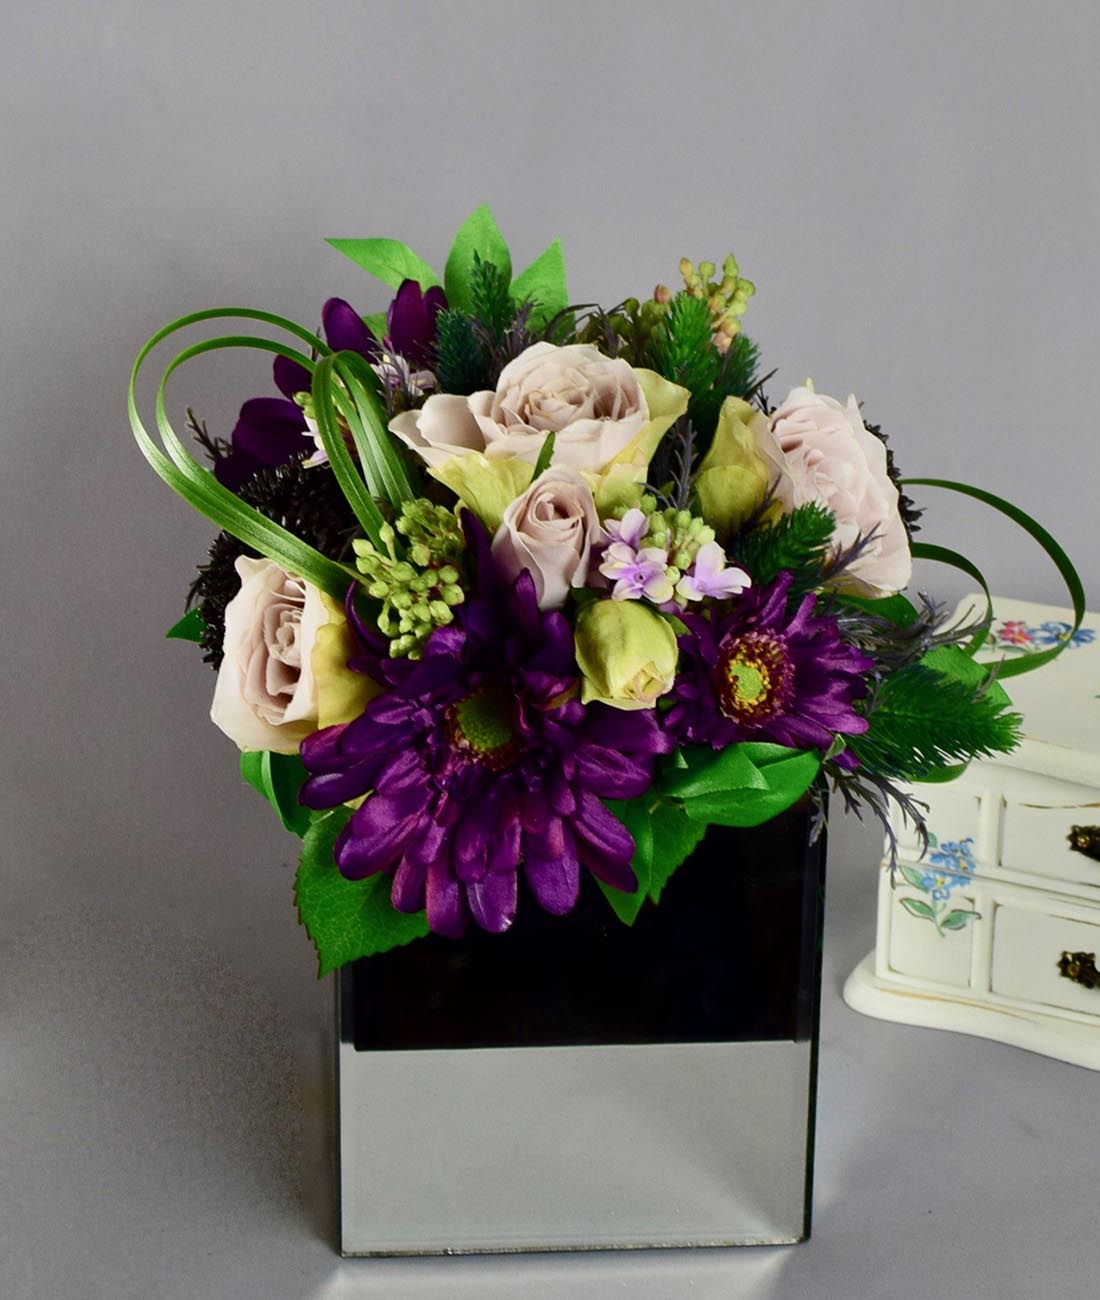 Why Choose Artificial Flowers For Outdoors?